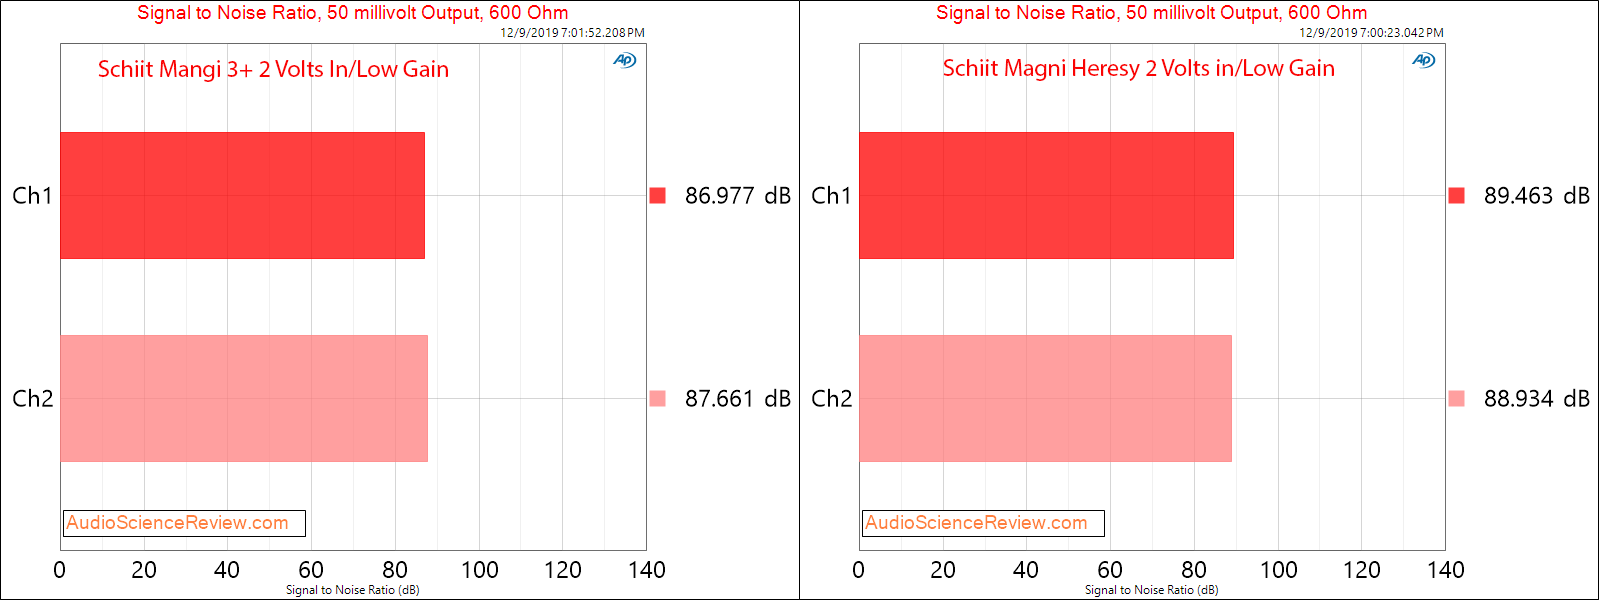 Schiit Magni 3+ and Heresy Headphone Amplifier Comparison Dynamic Range 50 millivolt Measureme...png